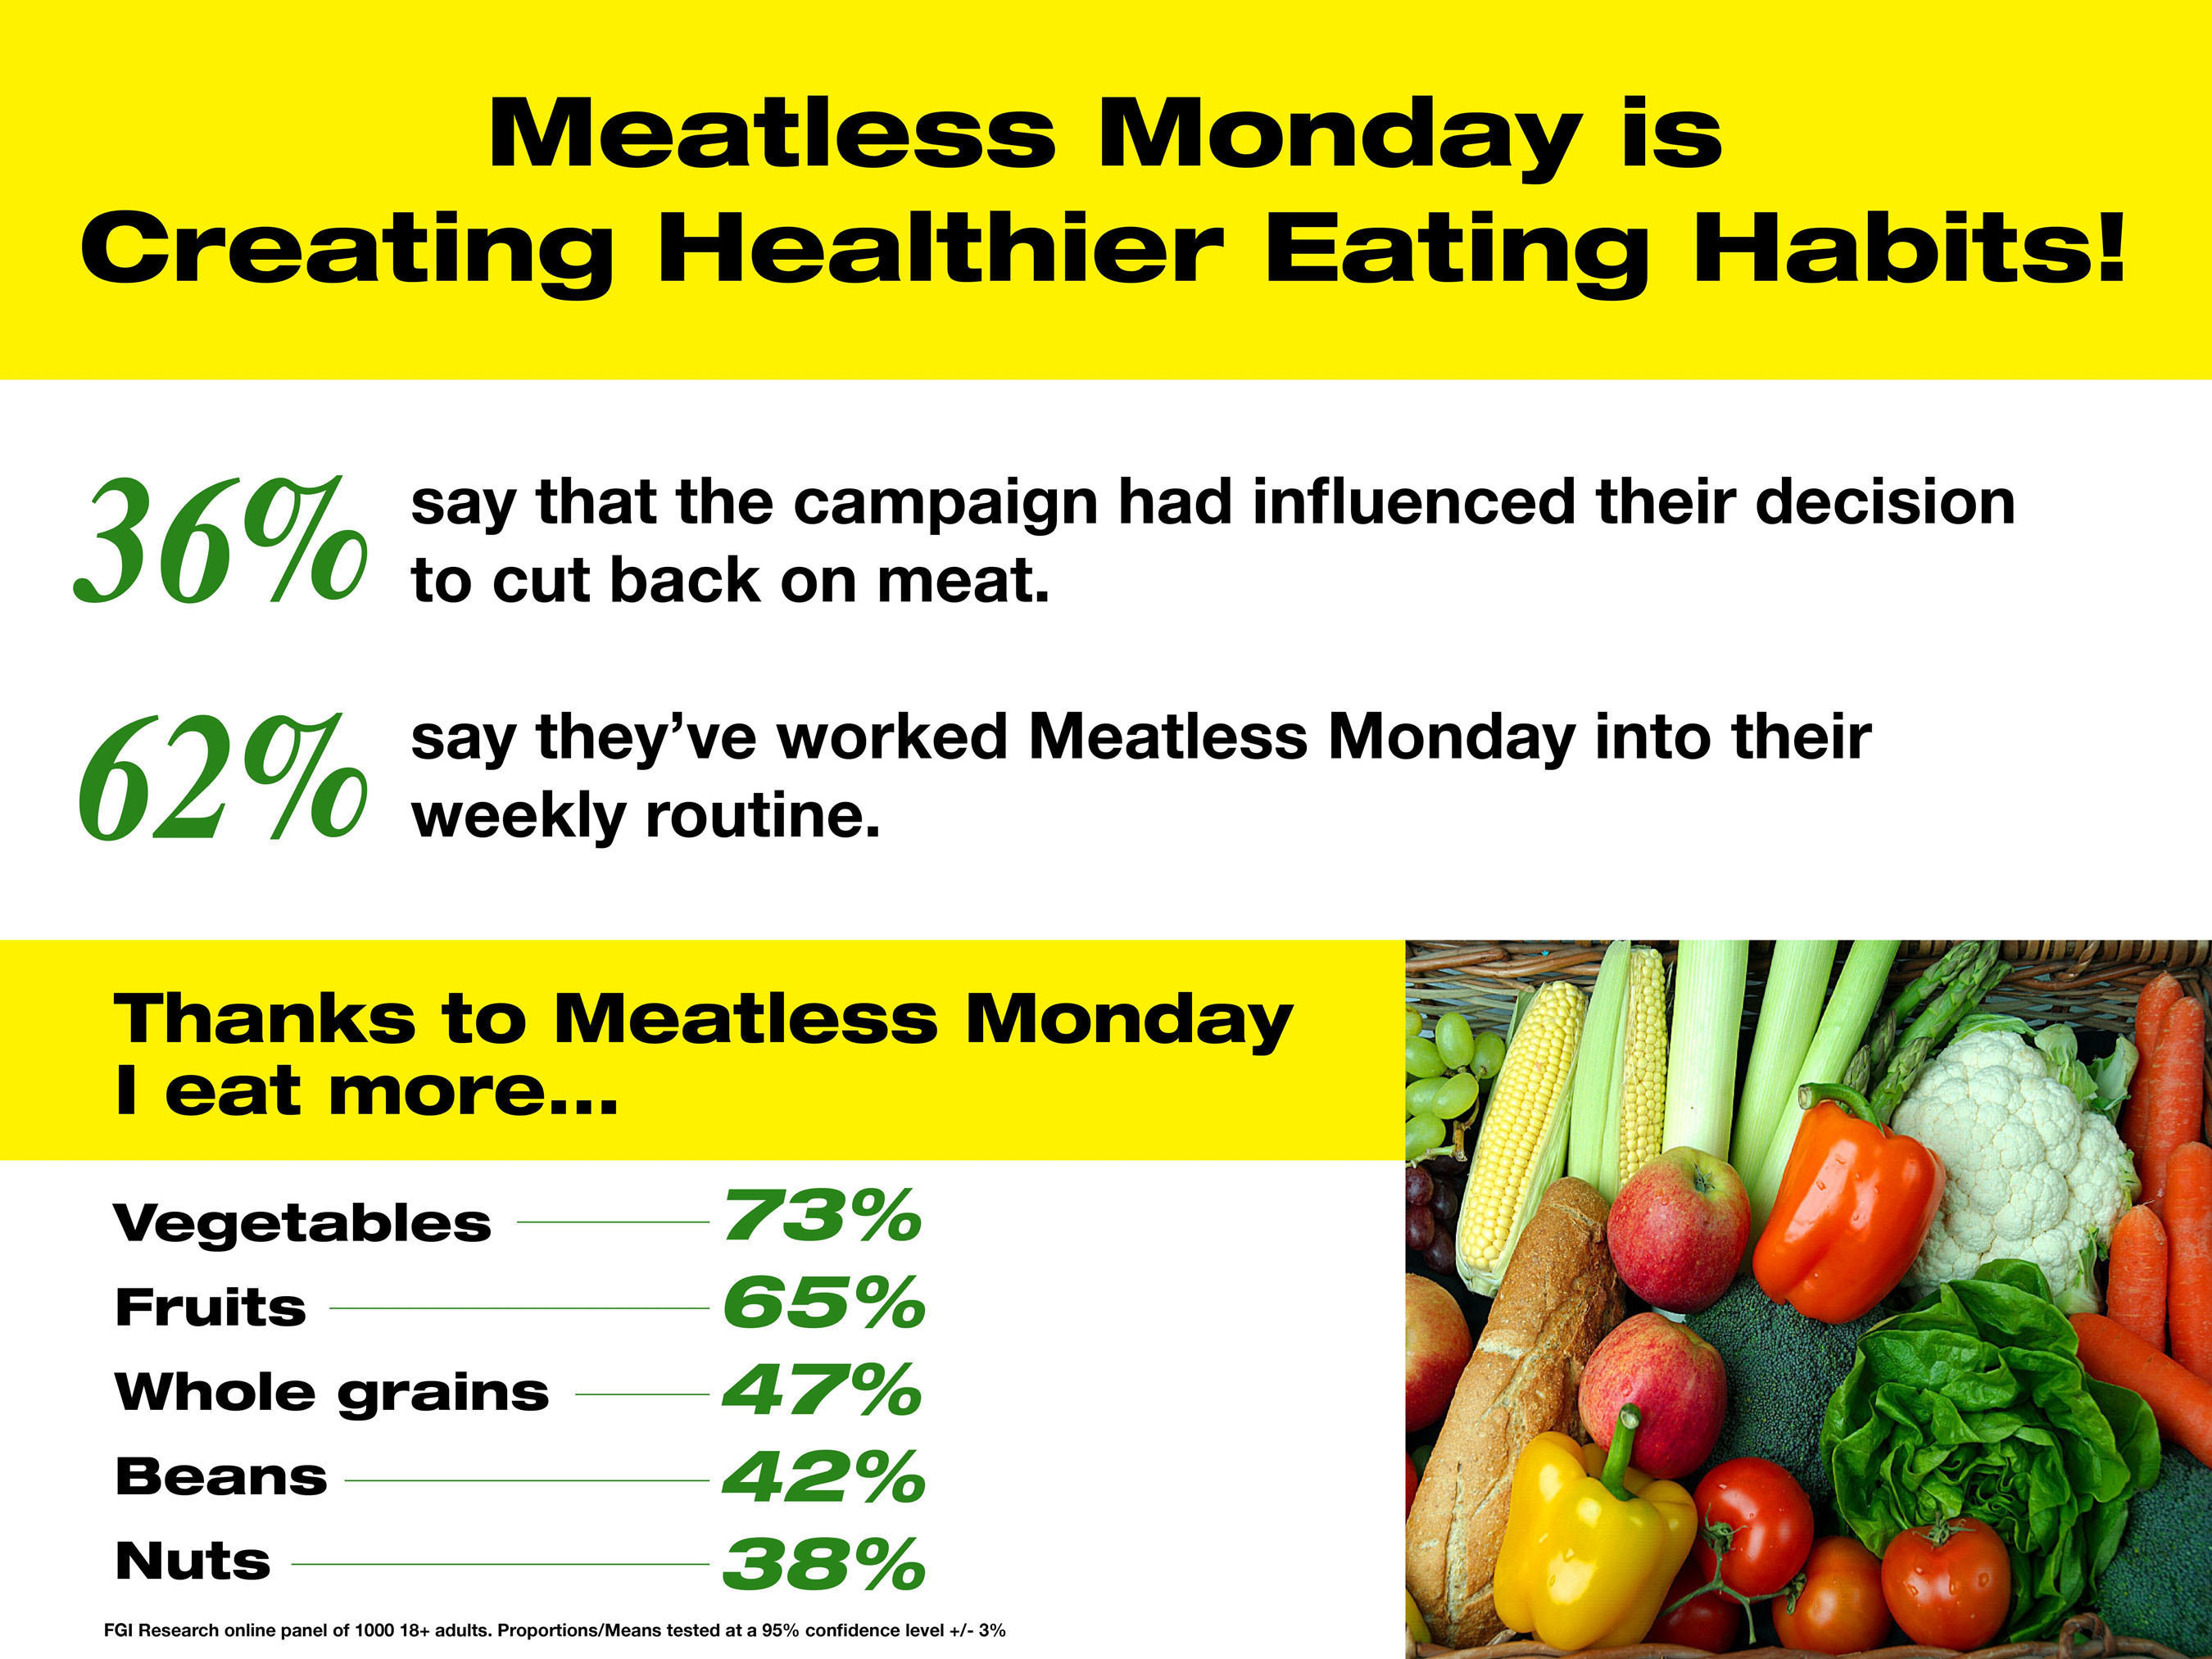 New Survey Shows Meatless Monday Helps Consumers Munch More Greens